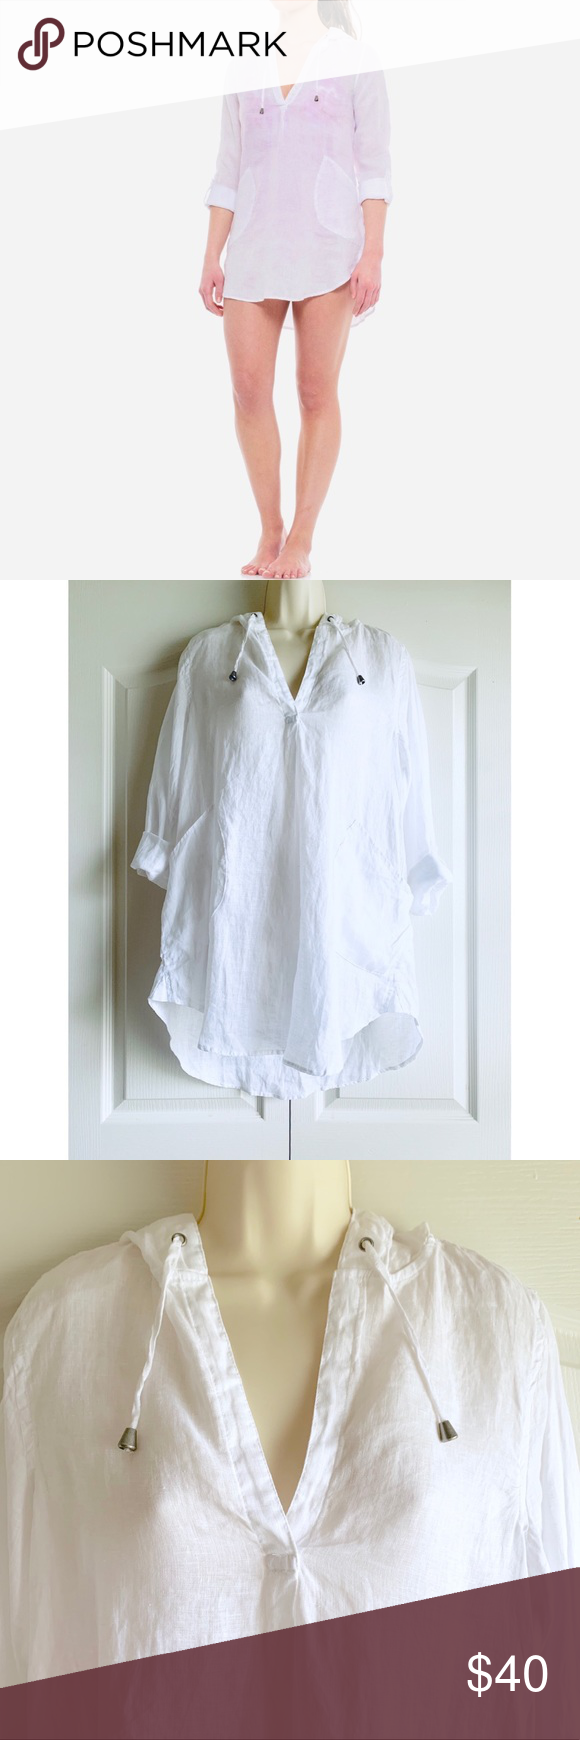 7f1bb7327691b Forcynthia Beachwear Linen Hooded Cover-Up Tunic Like new. Details: smooth,  light linen knit, attached two-panel hood with drawstring adjustments, ...